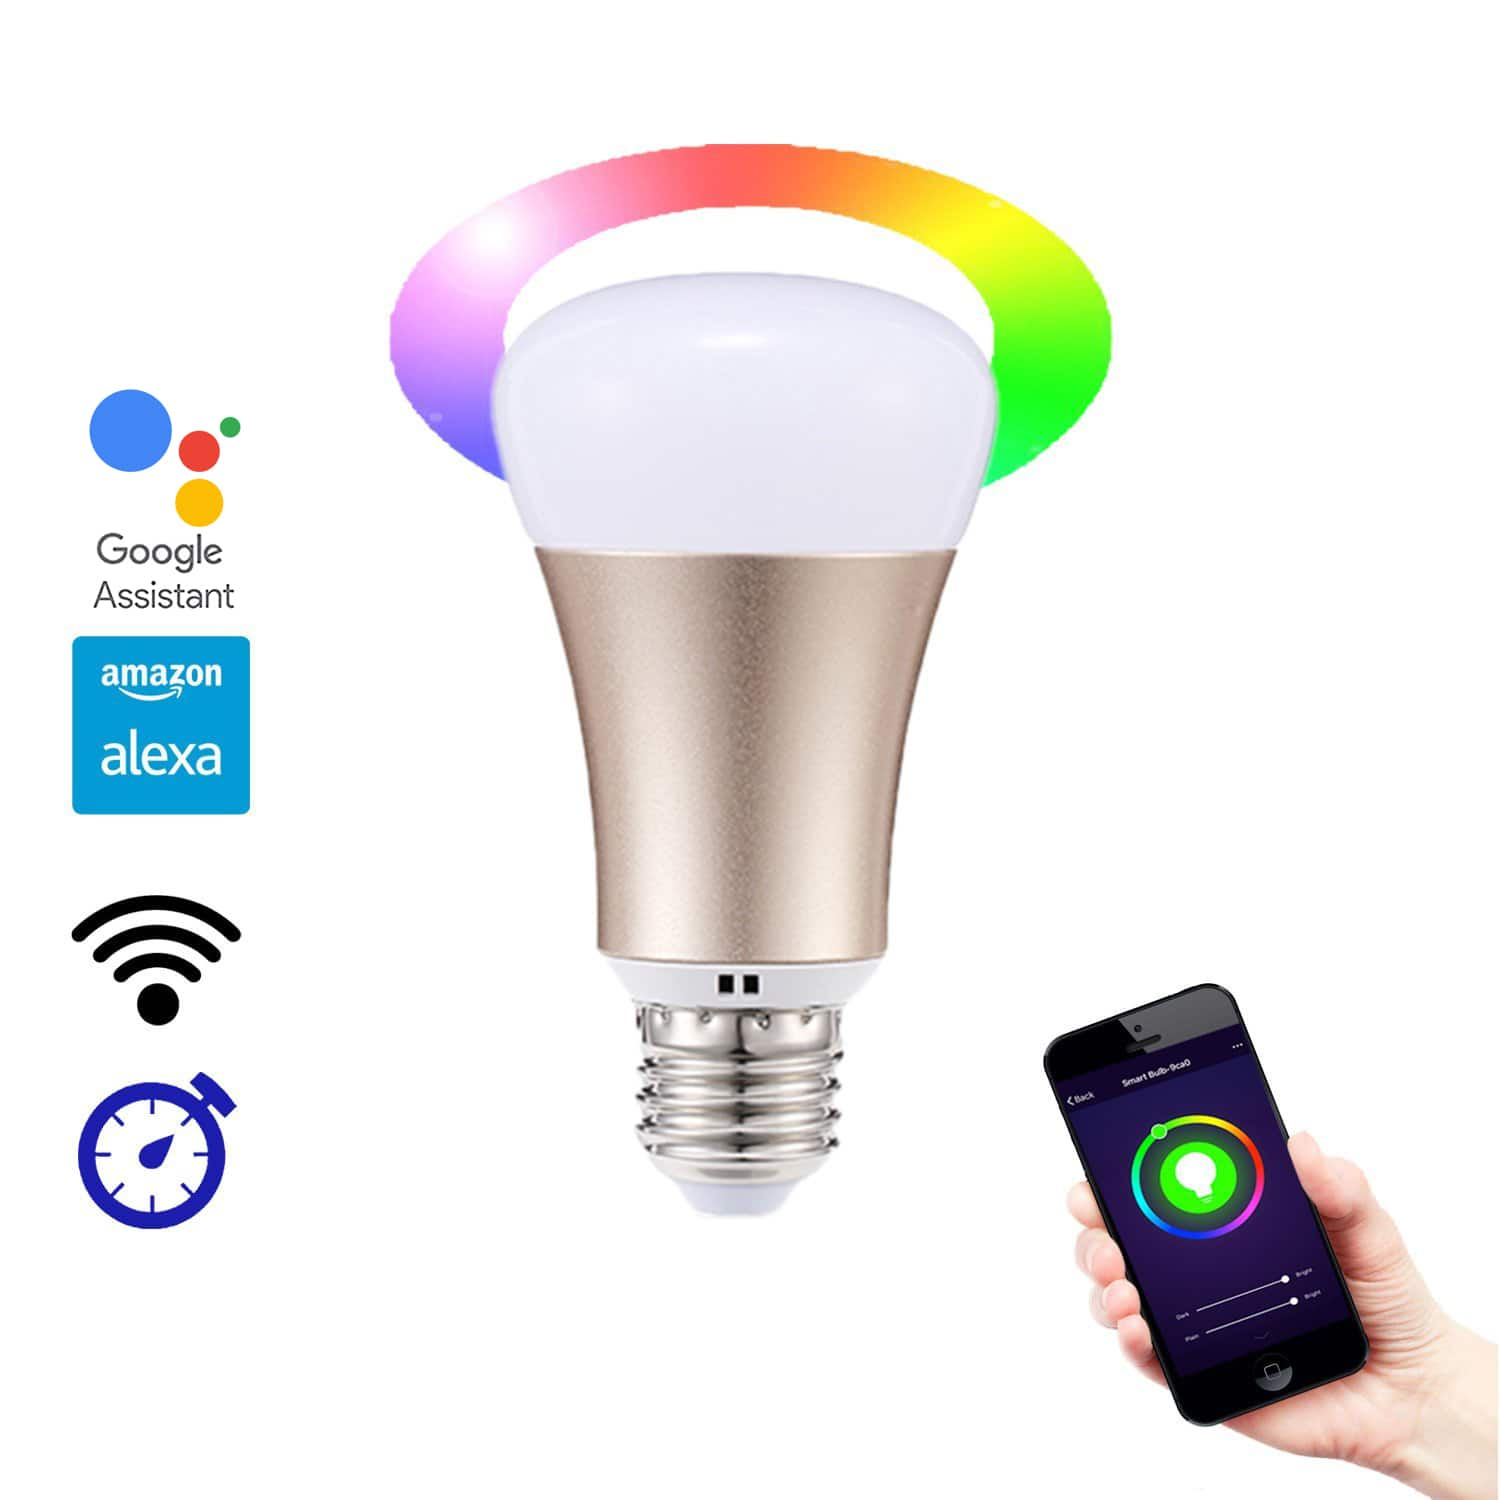 Weanas WiFi Smart LED Light Bulb - Works with Alexa - Smartphone Controlled Multicolored Color Changing Lights - Dimmable Night Light $14.98